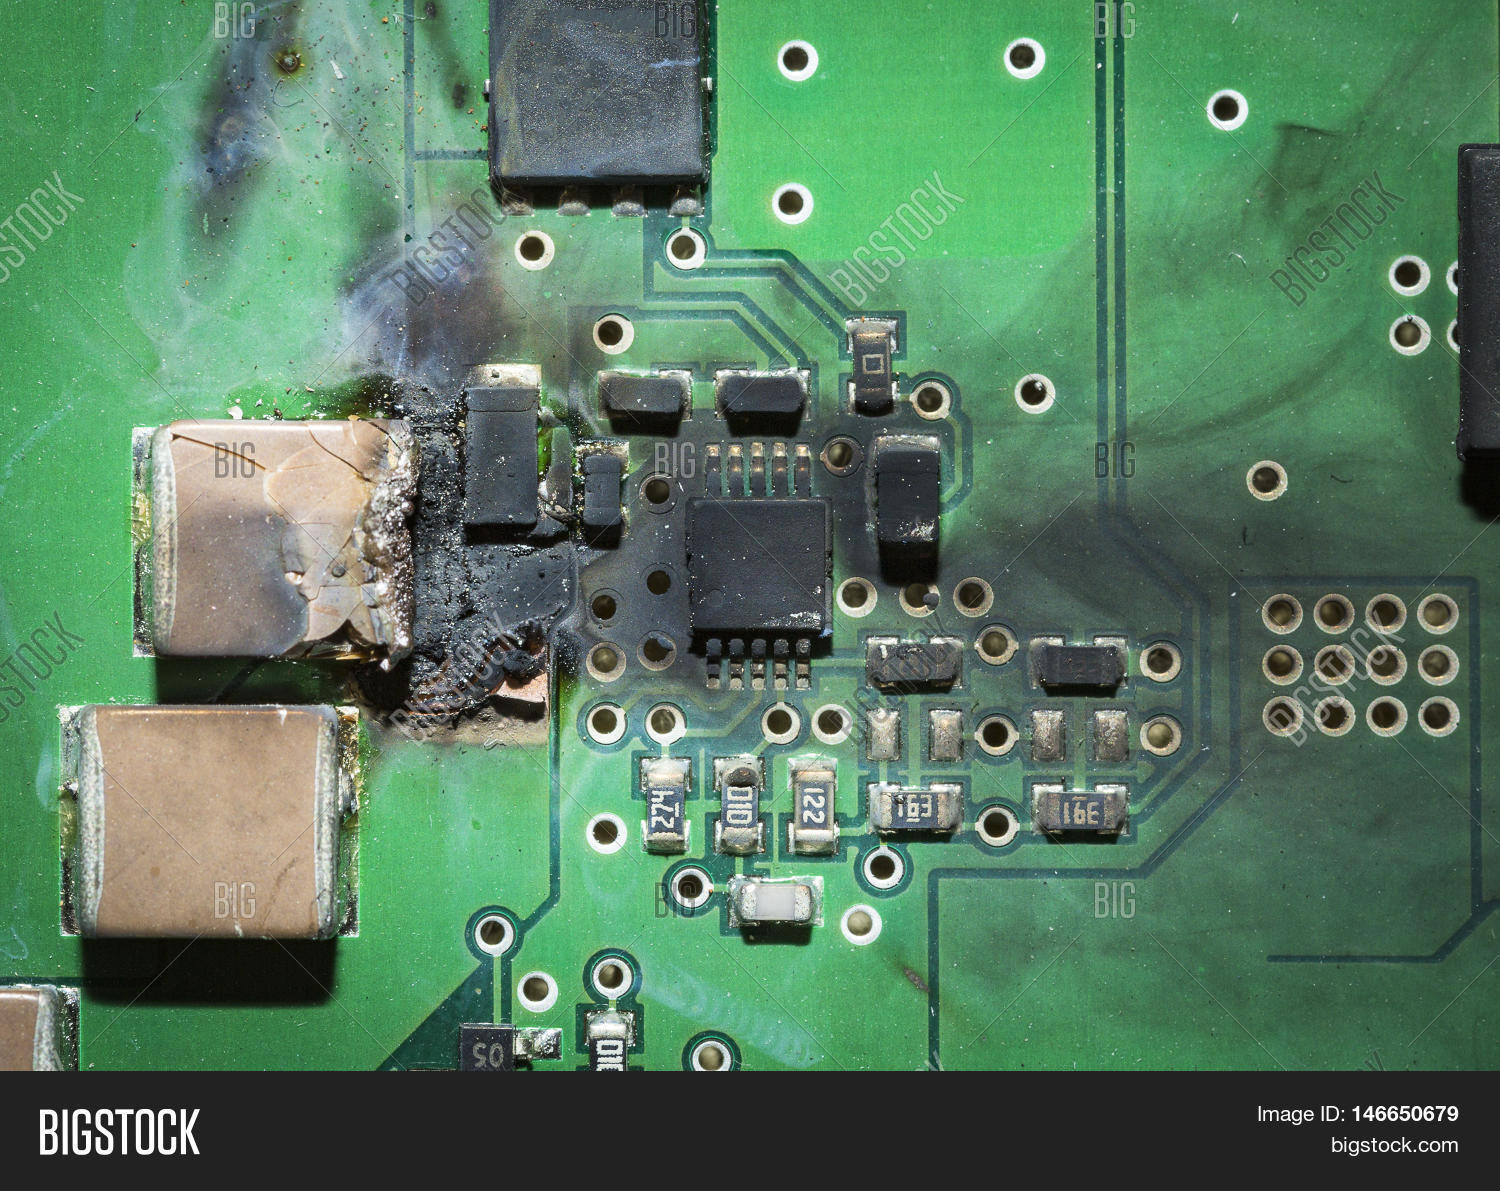 Burned Electronic Smd Image Photo Free Trial Bigstock Printed Circuit Board Royalty Stock Photography Pcb After A Short